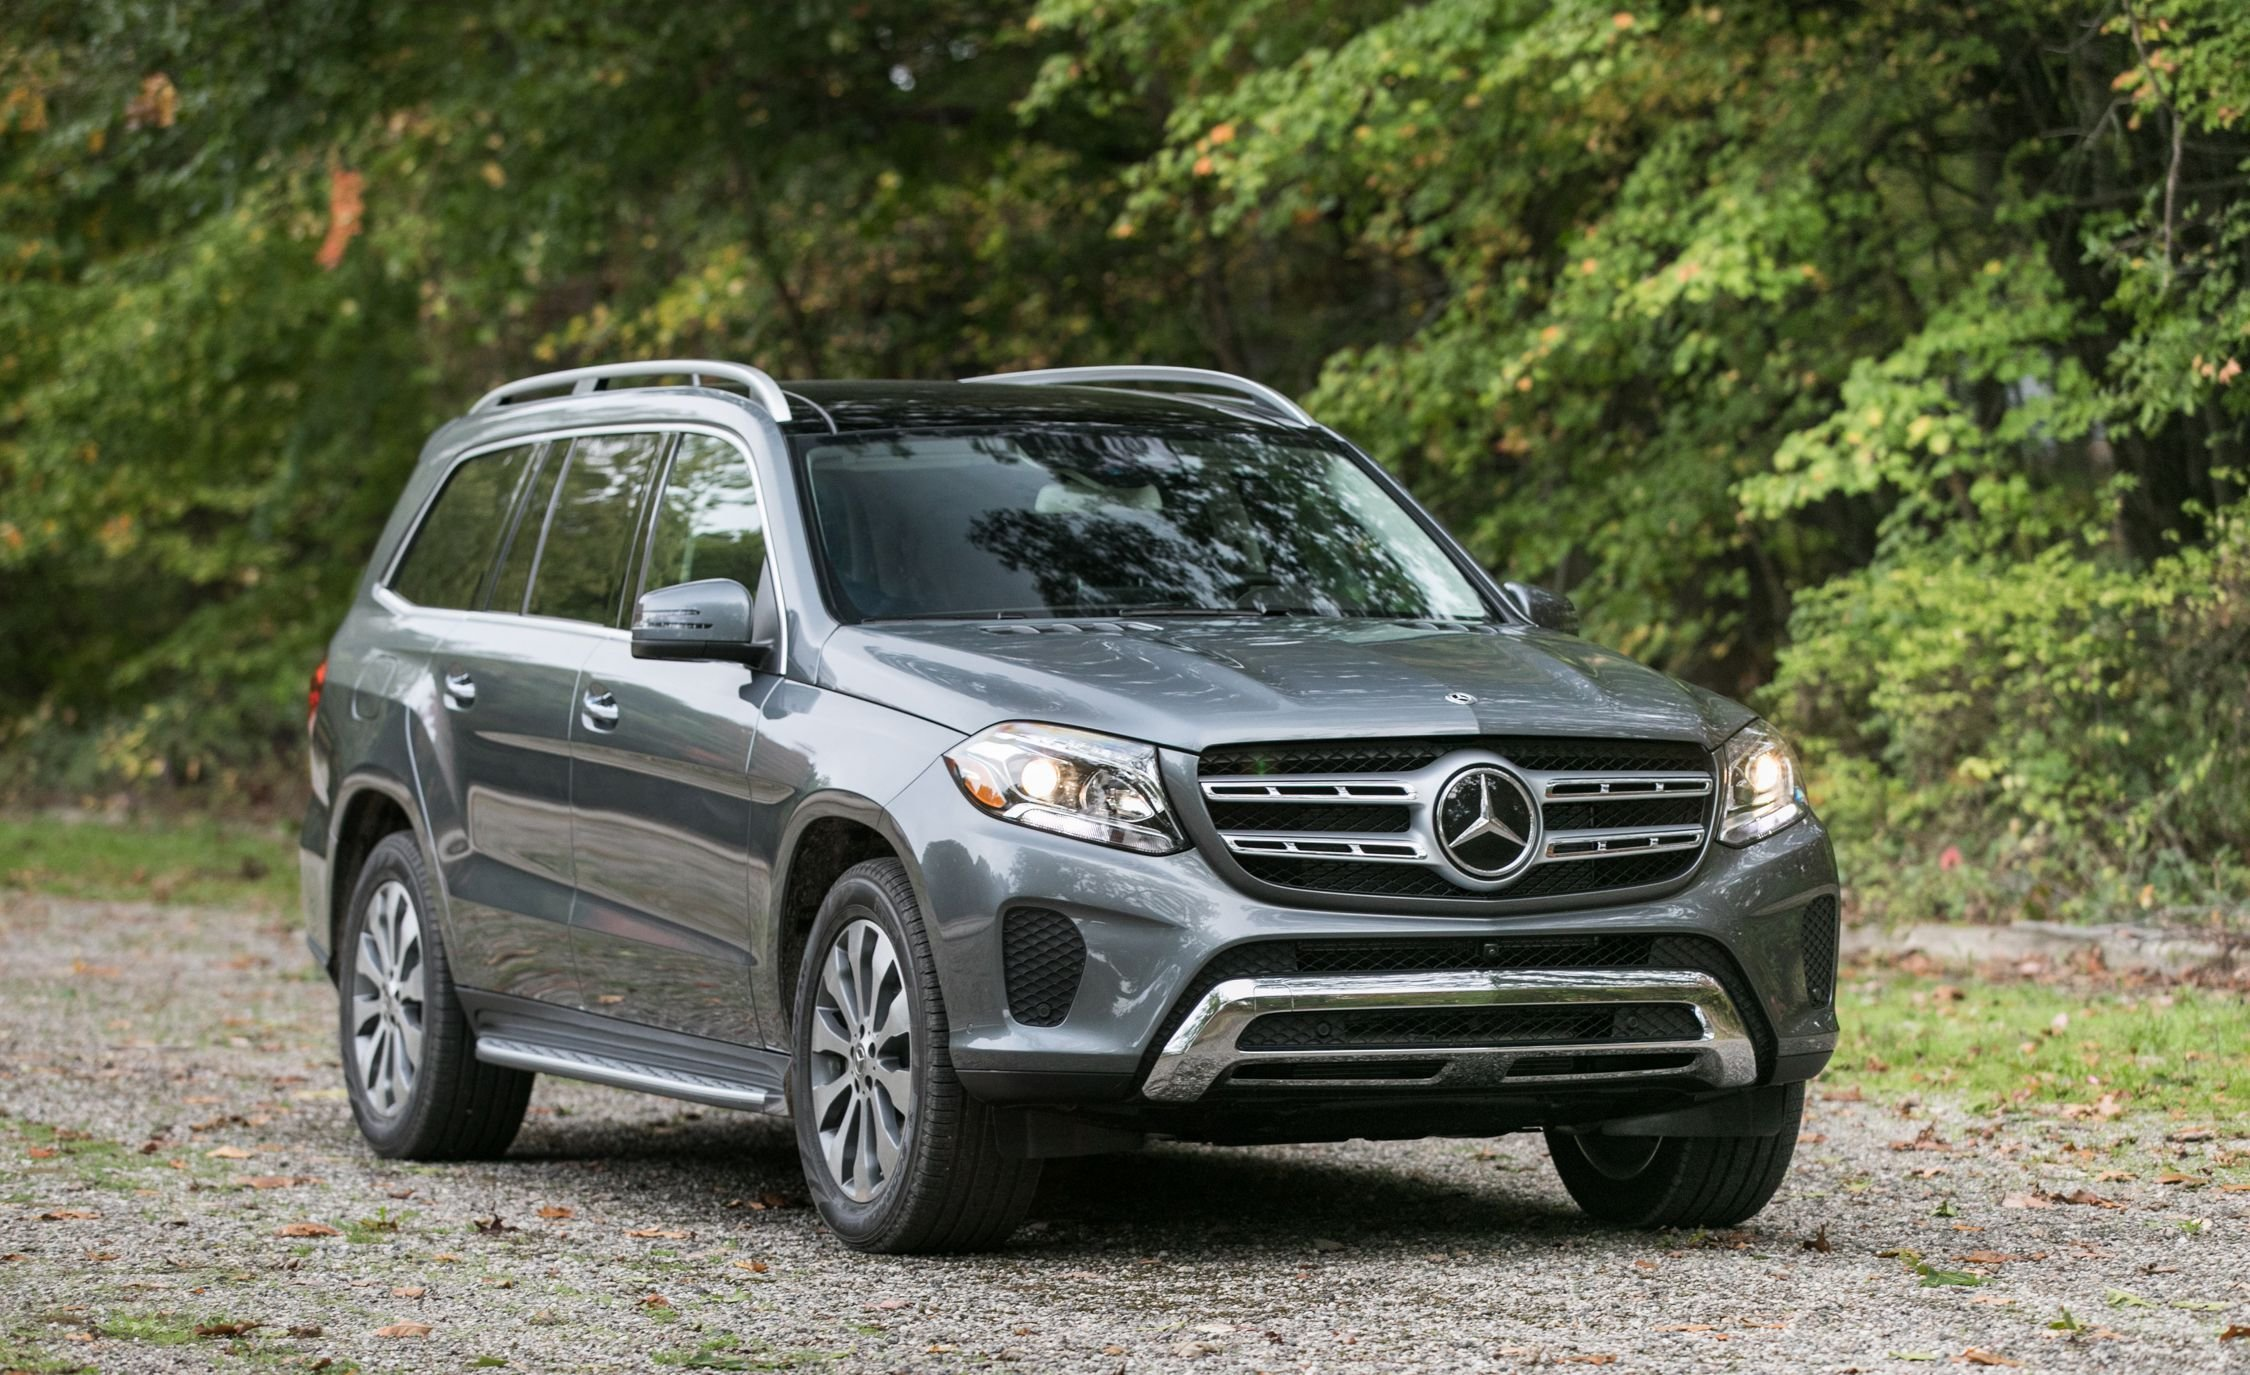 Latest 2018 Mercedes Benz Gls Class Exterior Review Car And Free Download